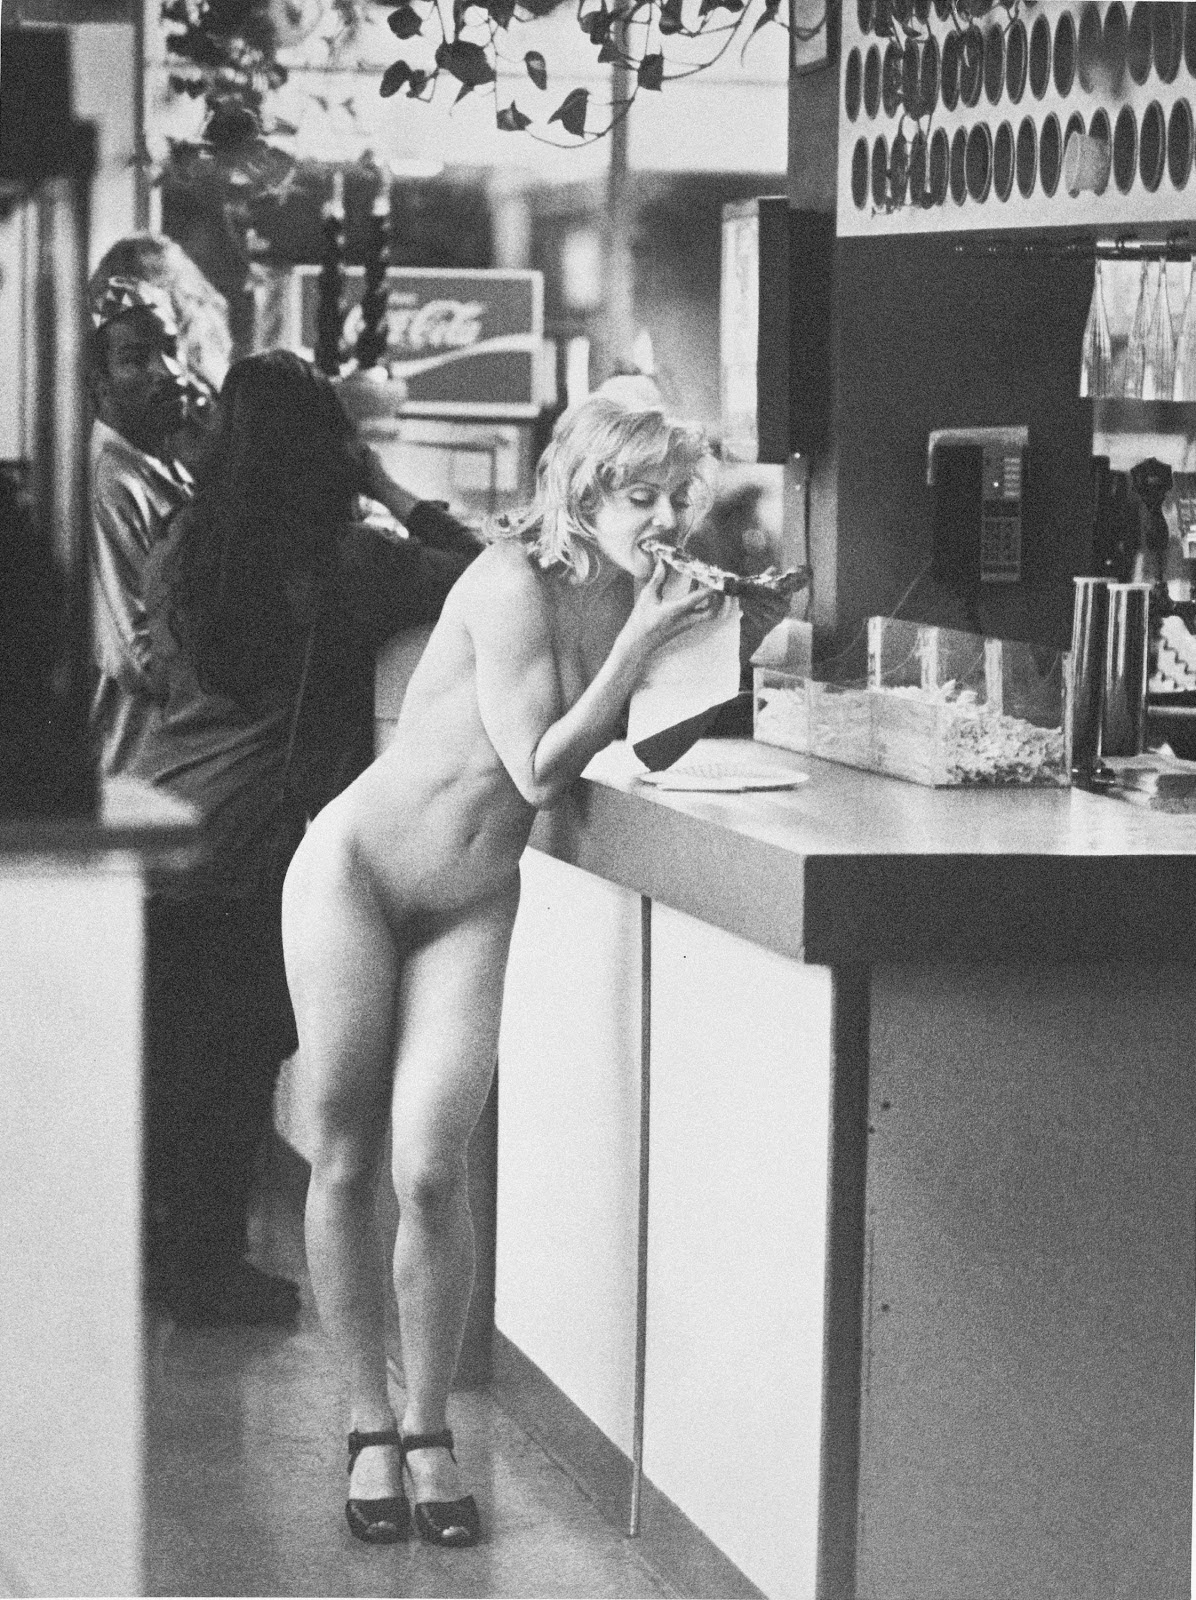 Madonna nude hitchhiker poster